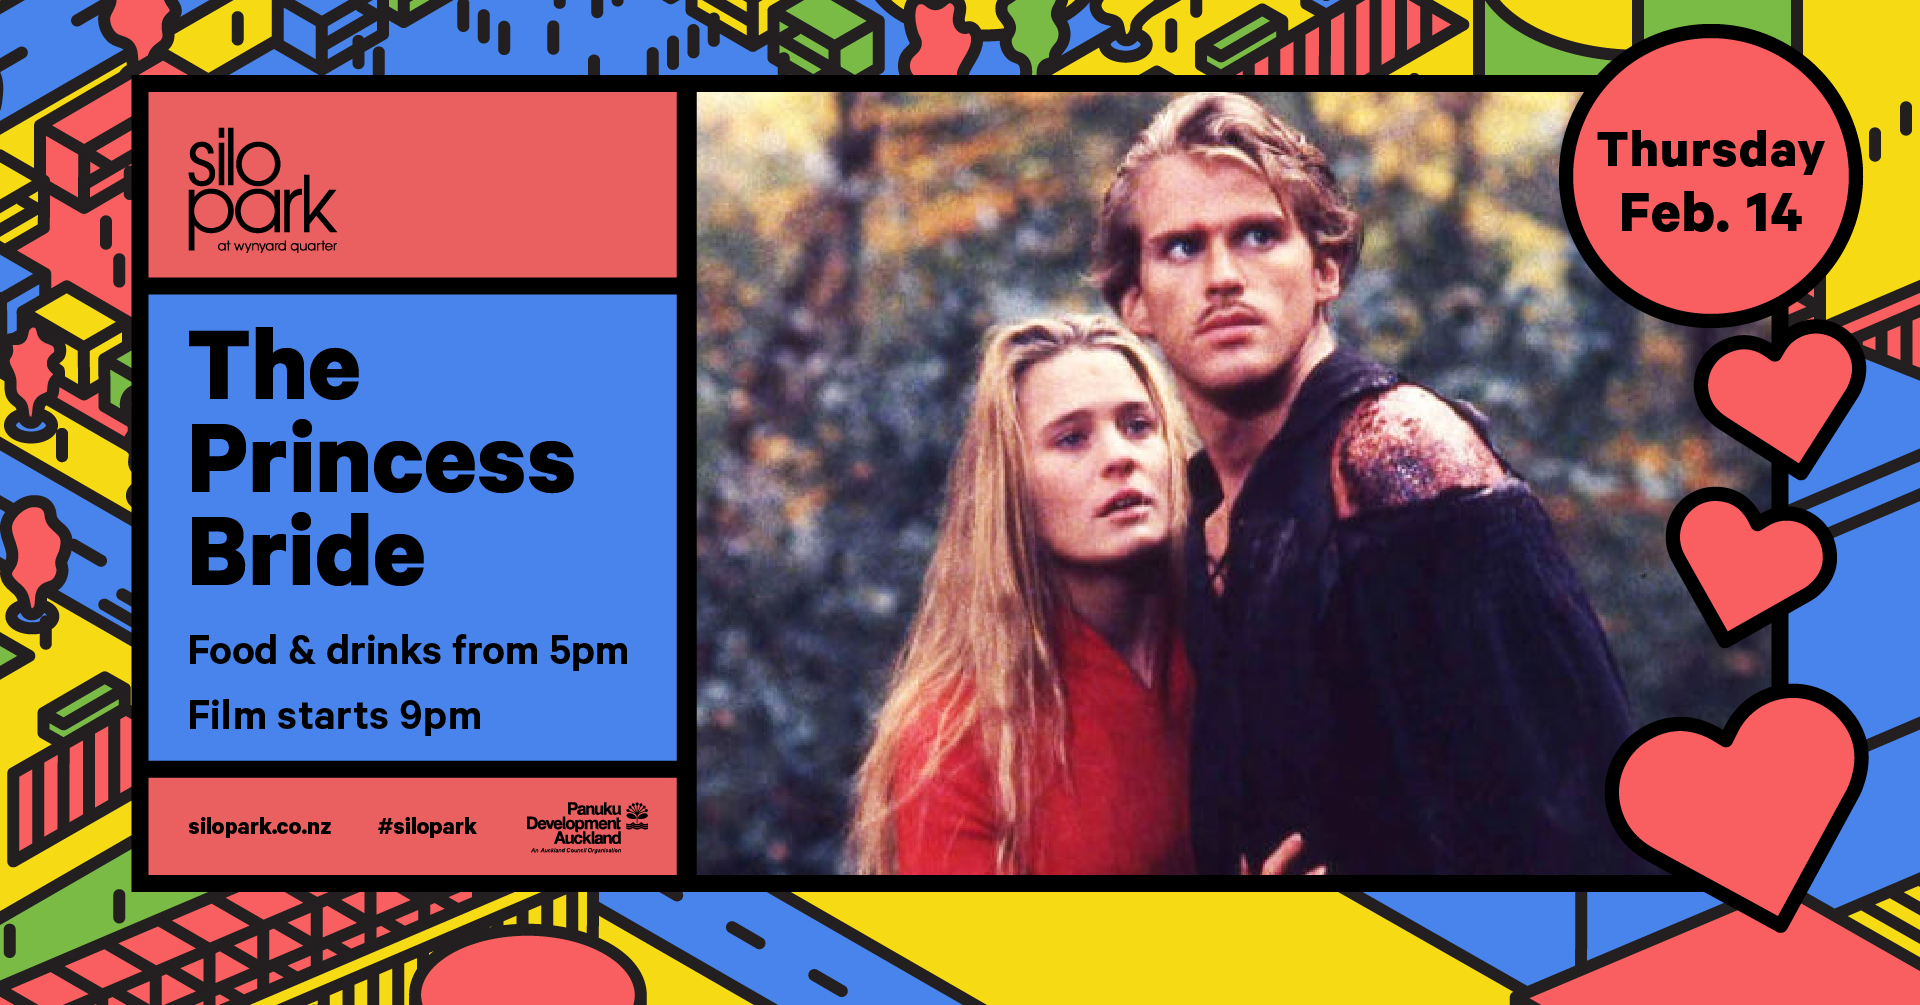 correct Princess bride_FB event cover copy 12.png